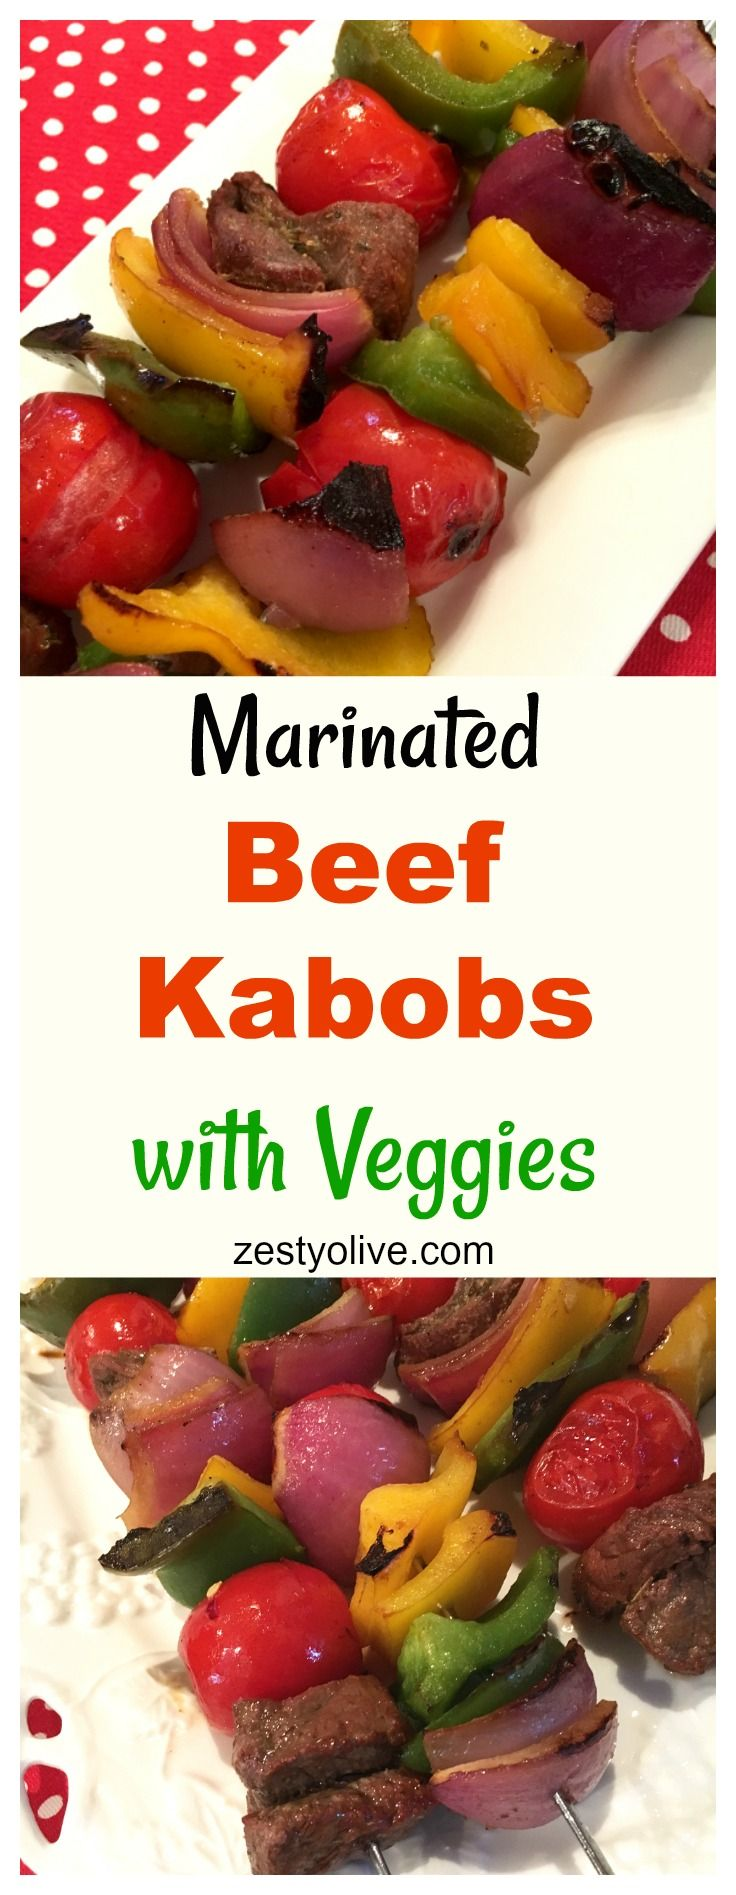 Marinated Beef Kabobs with Veggies